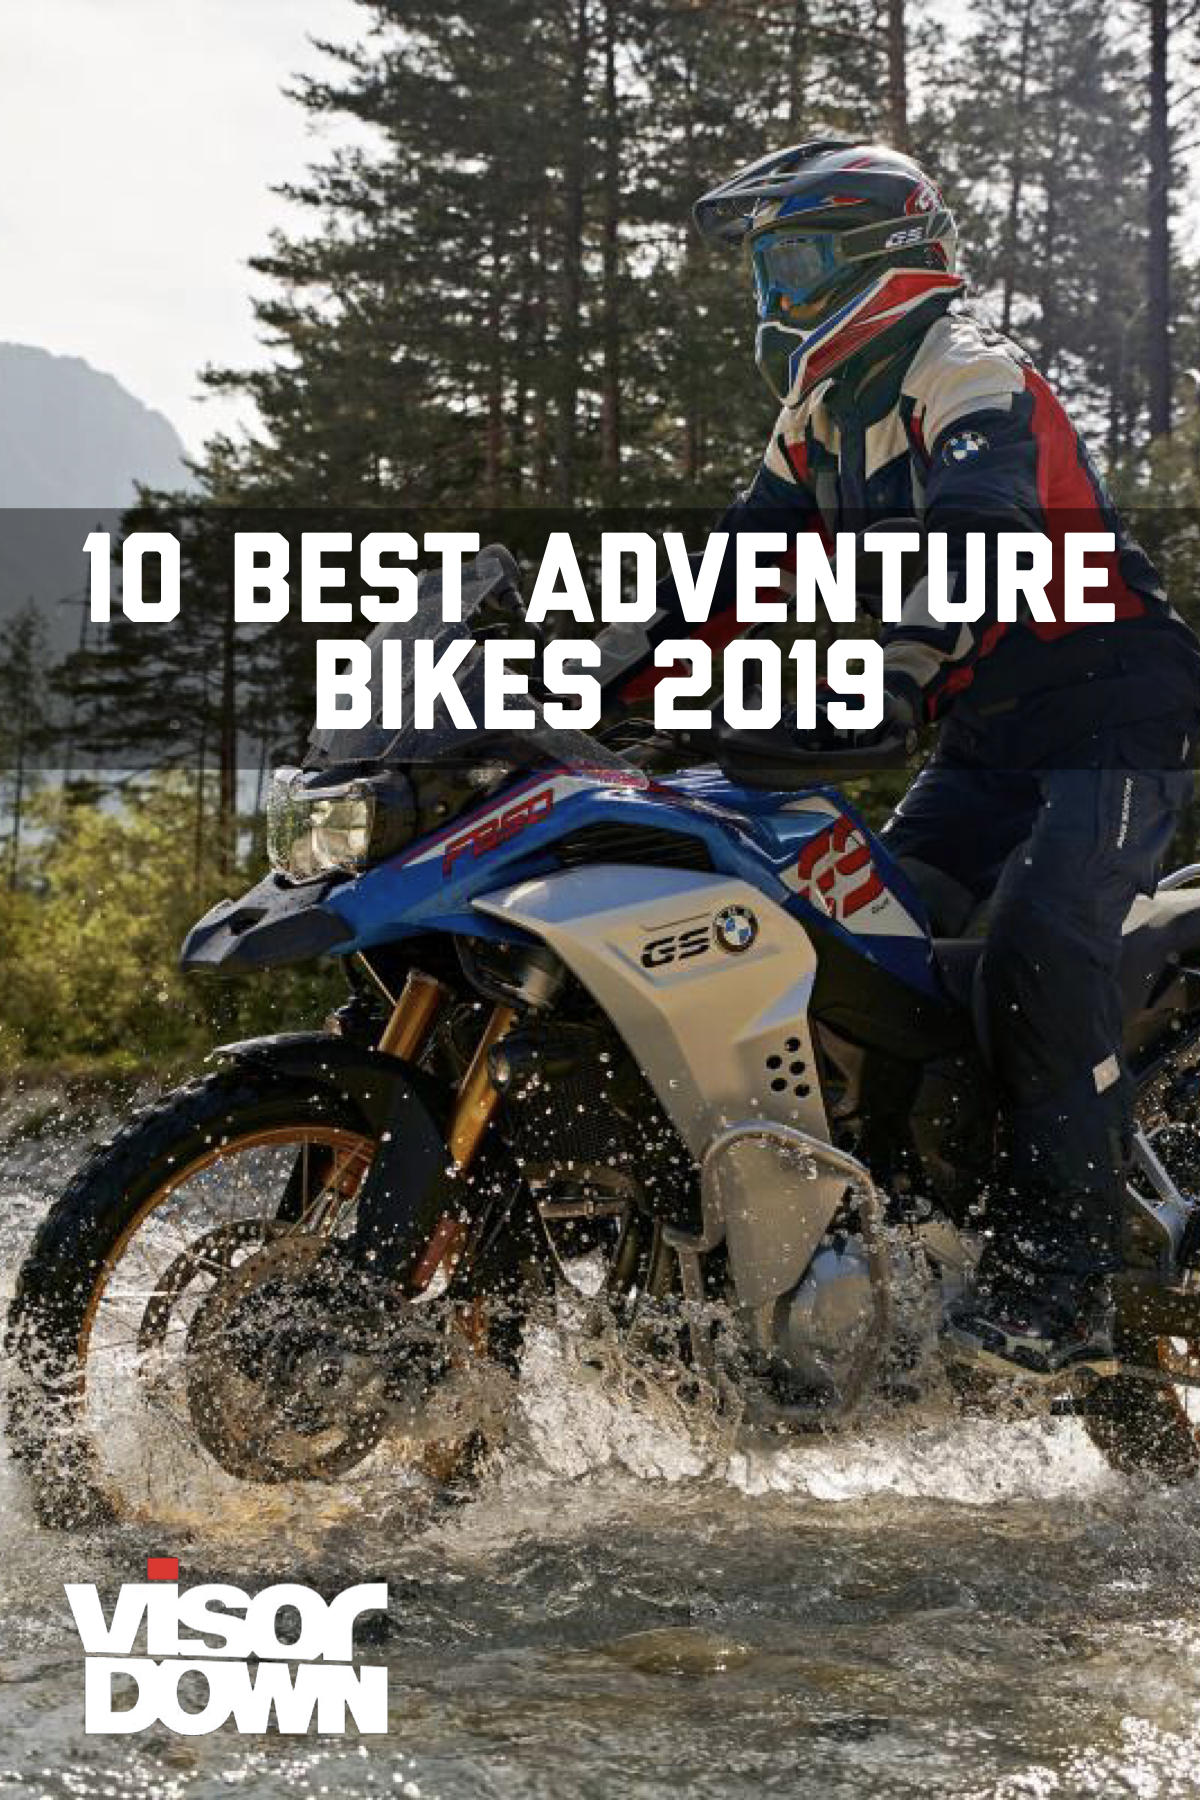 Top 10 New For 2019 Adventure Bikes Adventure Bike Motorcycle